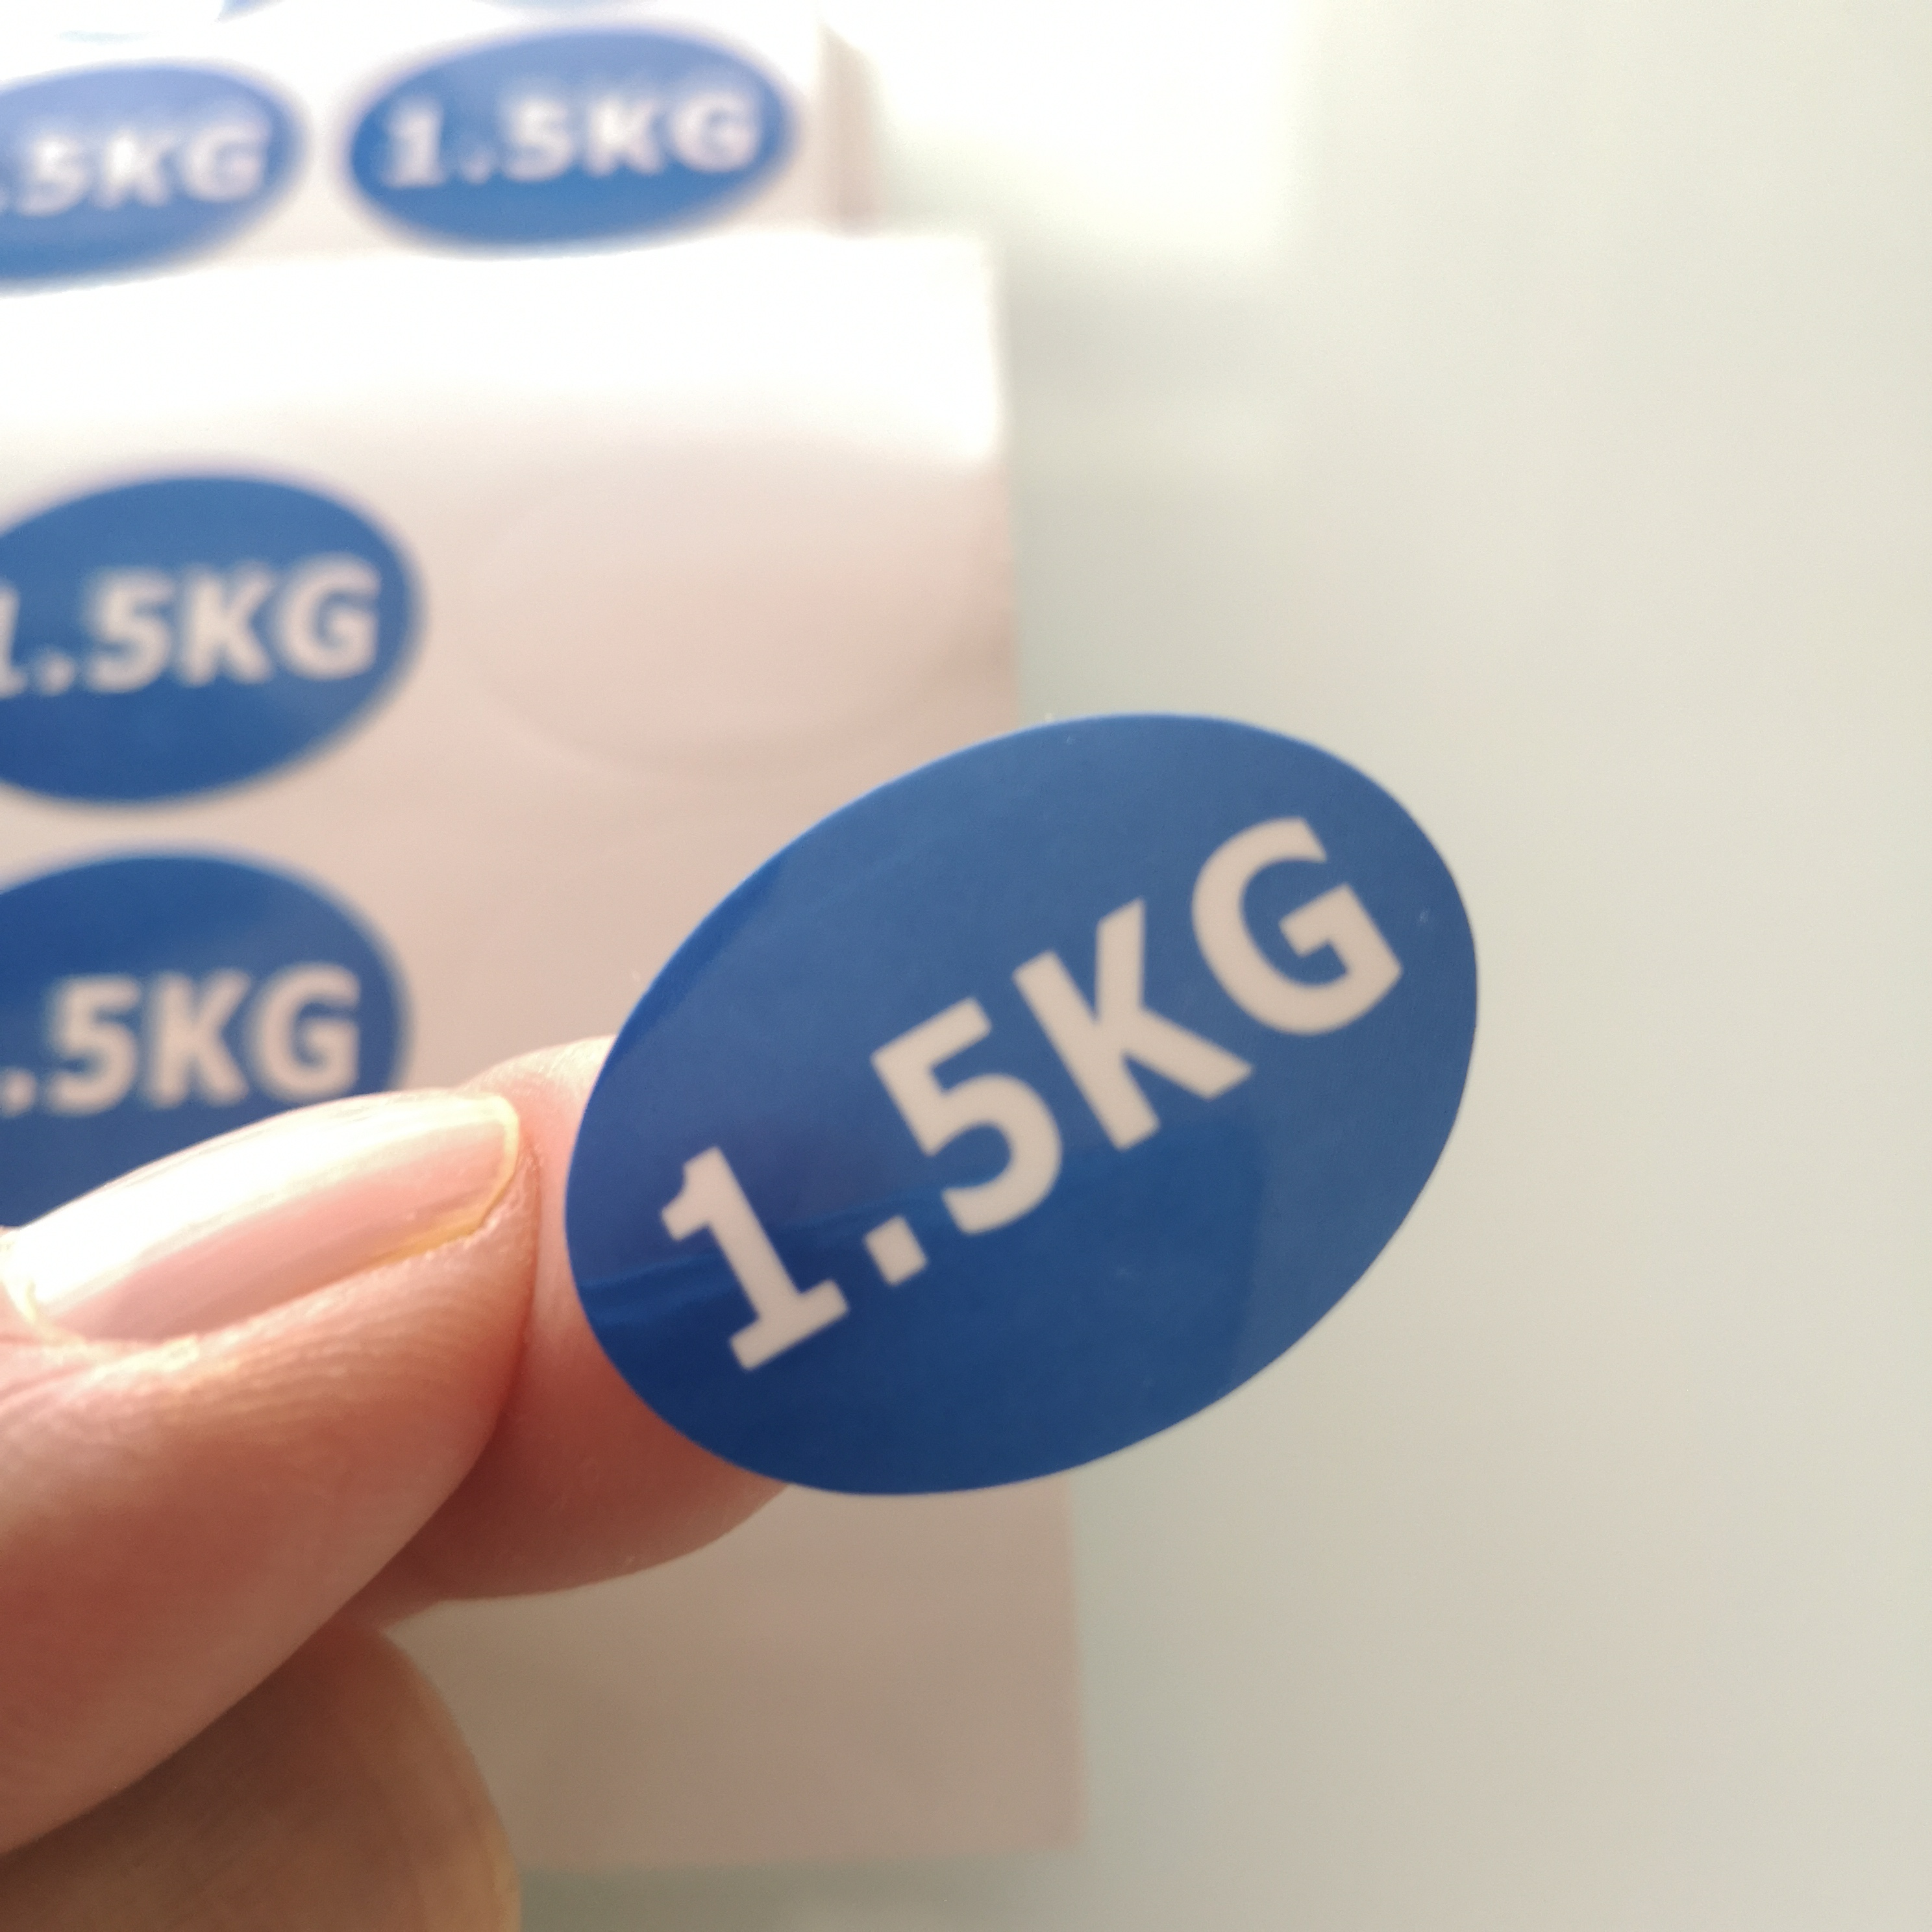 10000pcs 2.7x1cm 1.5KG Weight Number Self-adhesive Paper Label Sticker For Packing, Item No. FA42